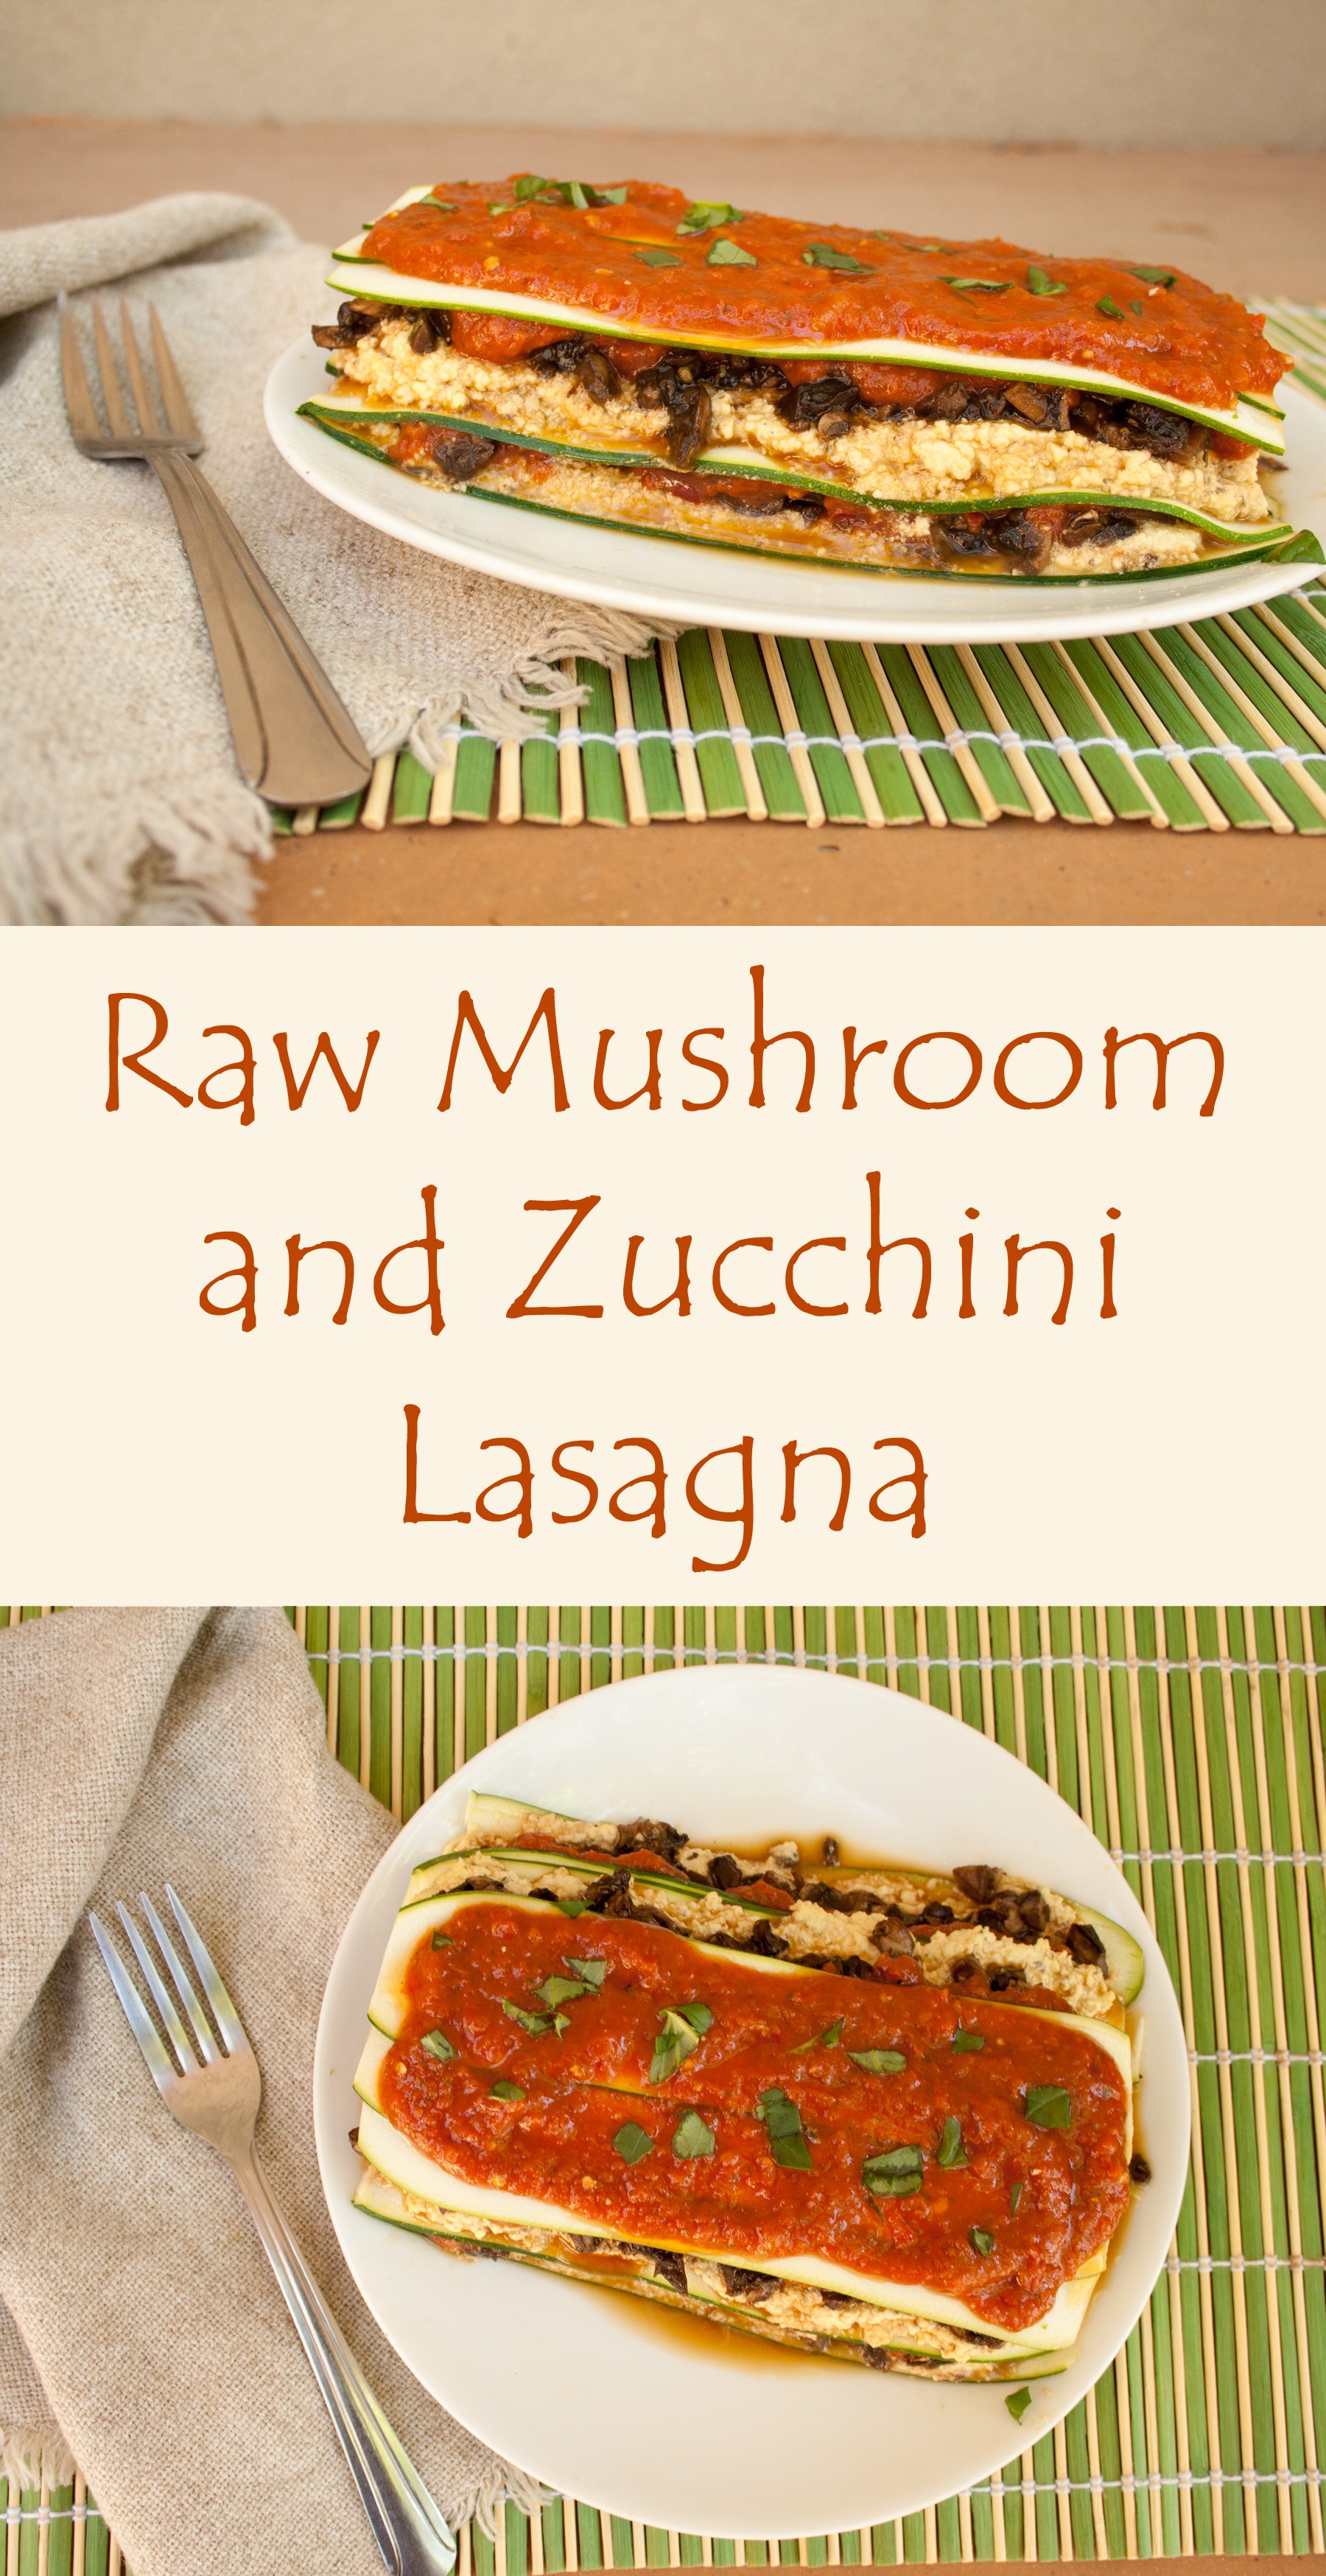 Raw Mushroom and Zucchini Lasagna collage photo with text.